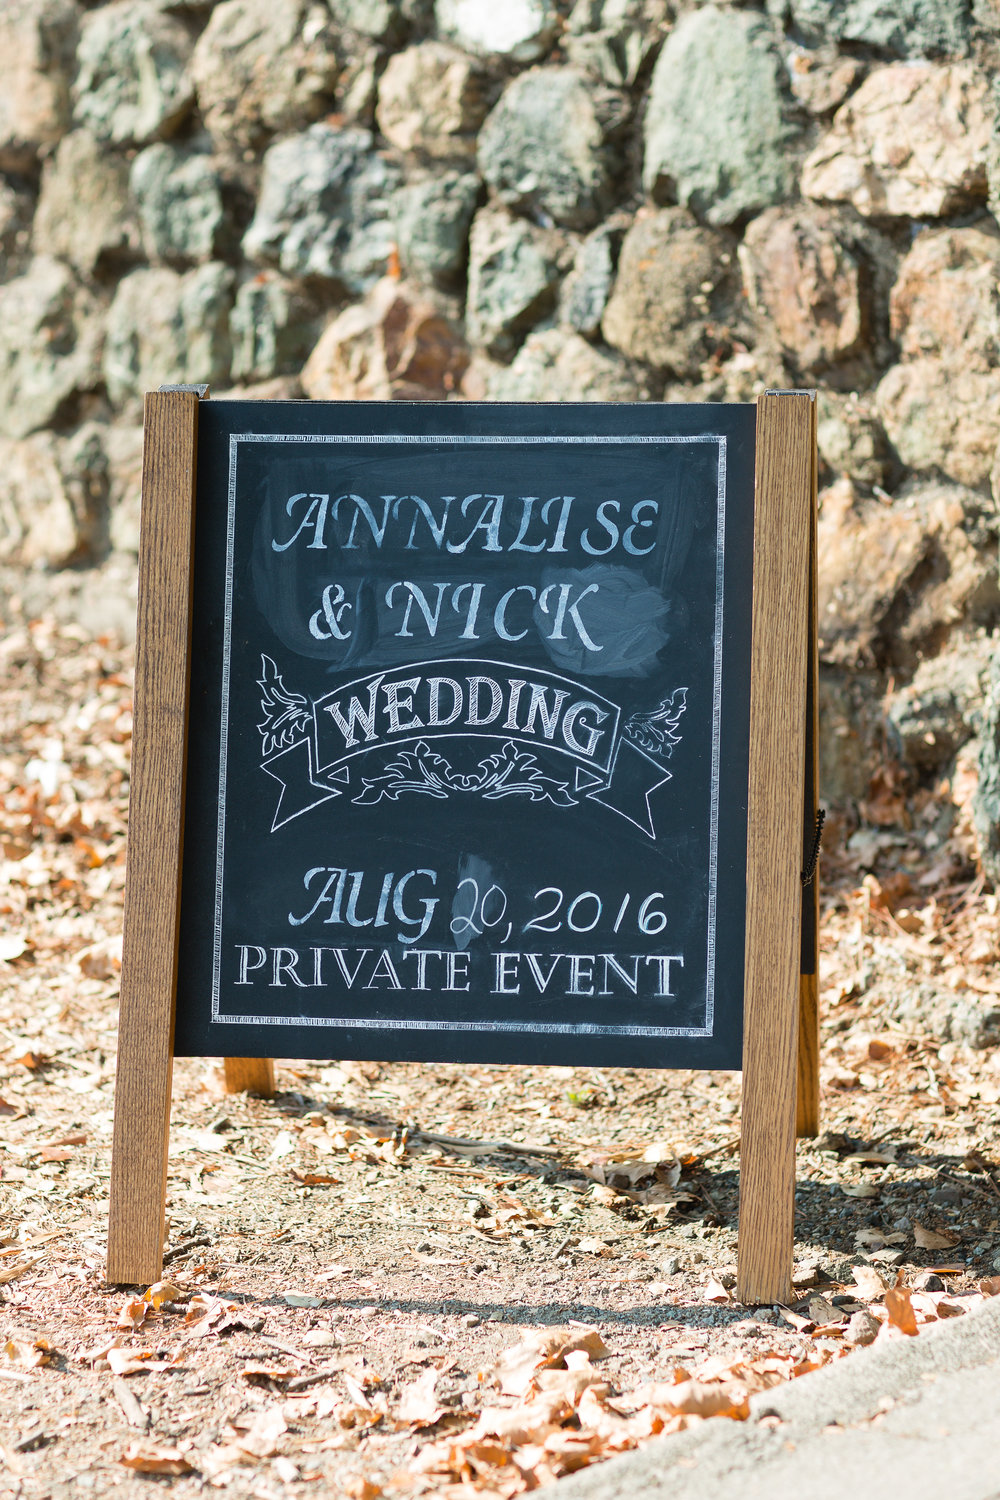 Annalise-Nick-Maple-Lawn-Wedding-1.jpg